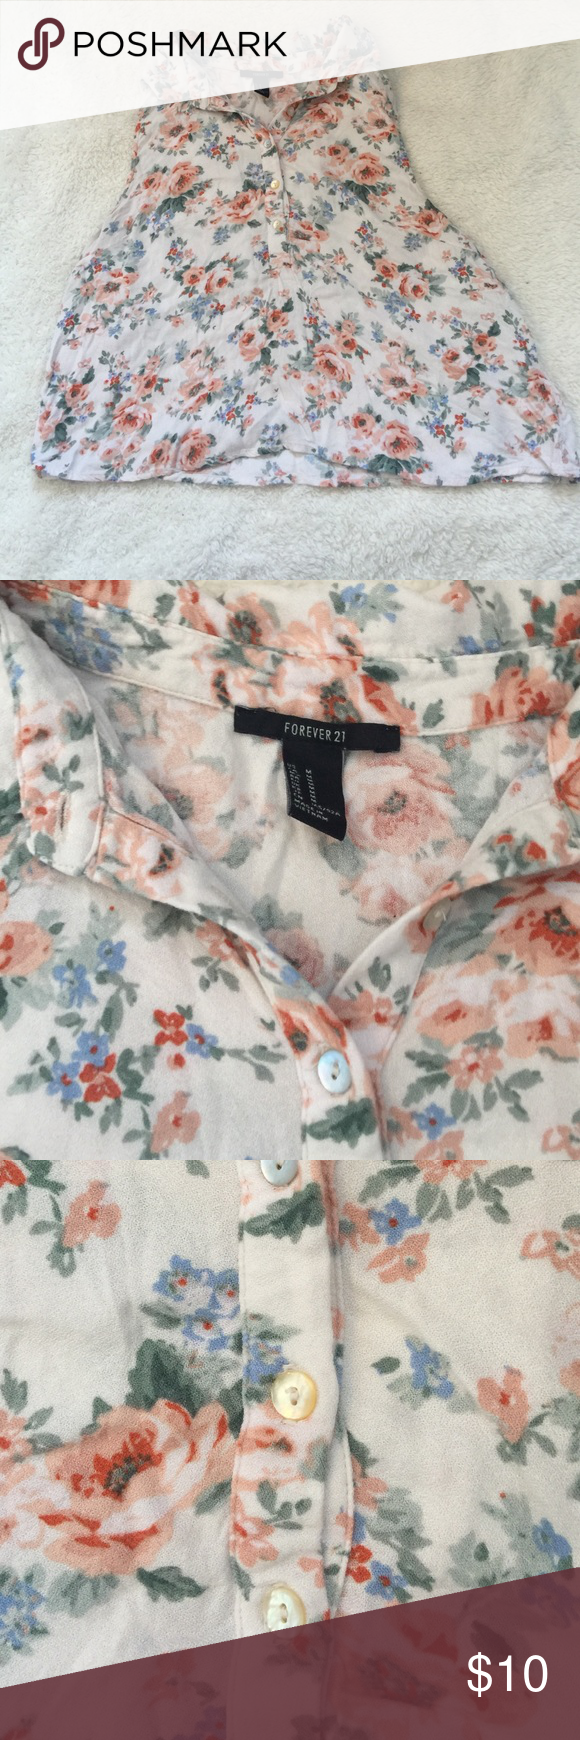 Floral Tank Top Tag says medium but fits like a small. Forever 21 Tops Tank Tops